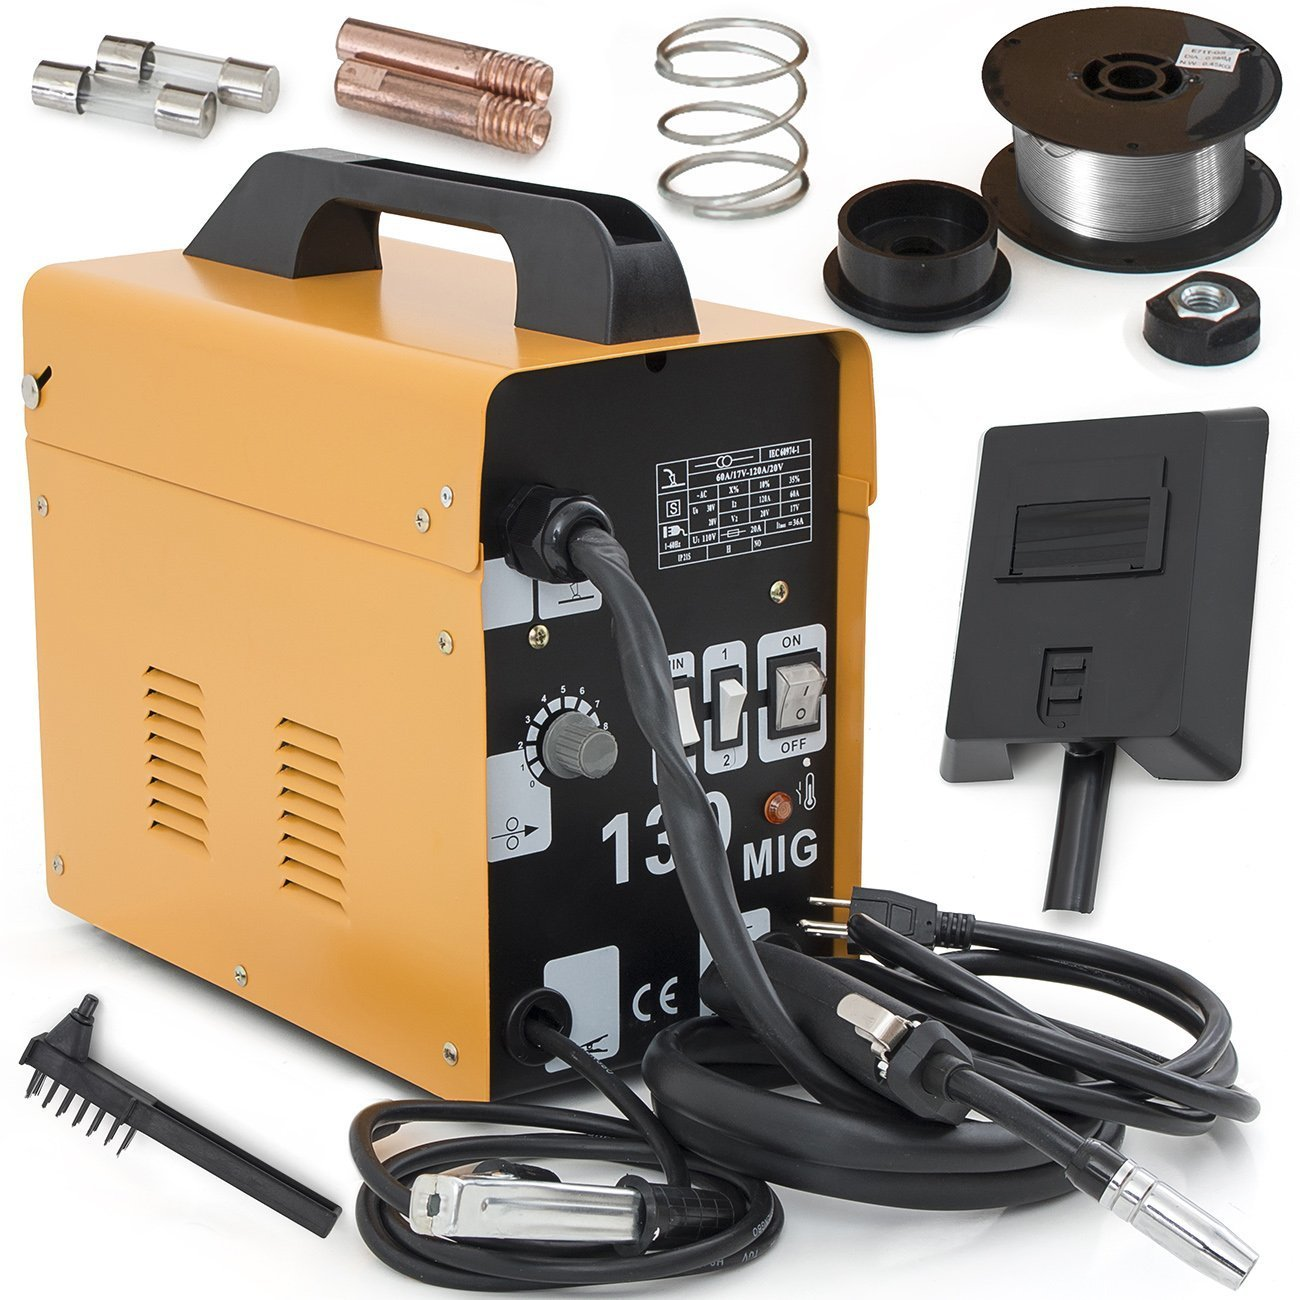 ARKSEN MIG-130 Gas-Less Flux Core Wire Welder Welding Machine Automatic Feed